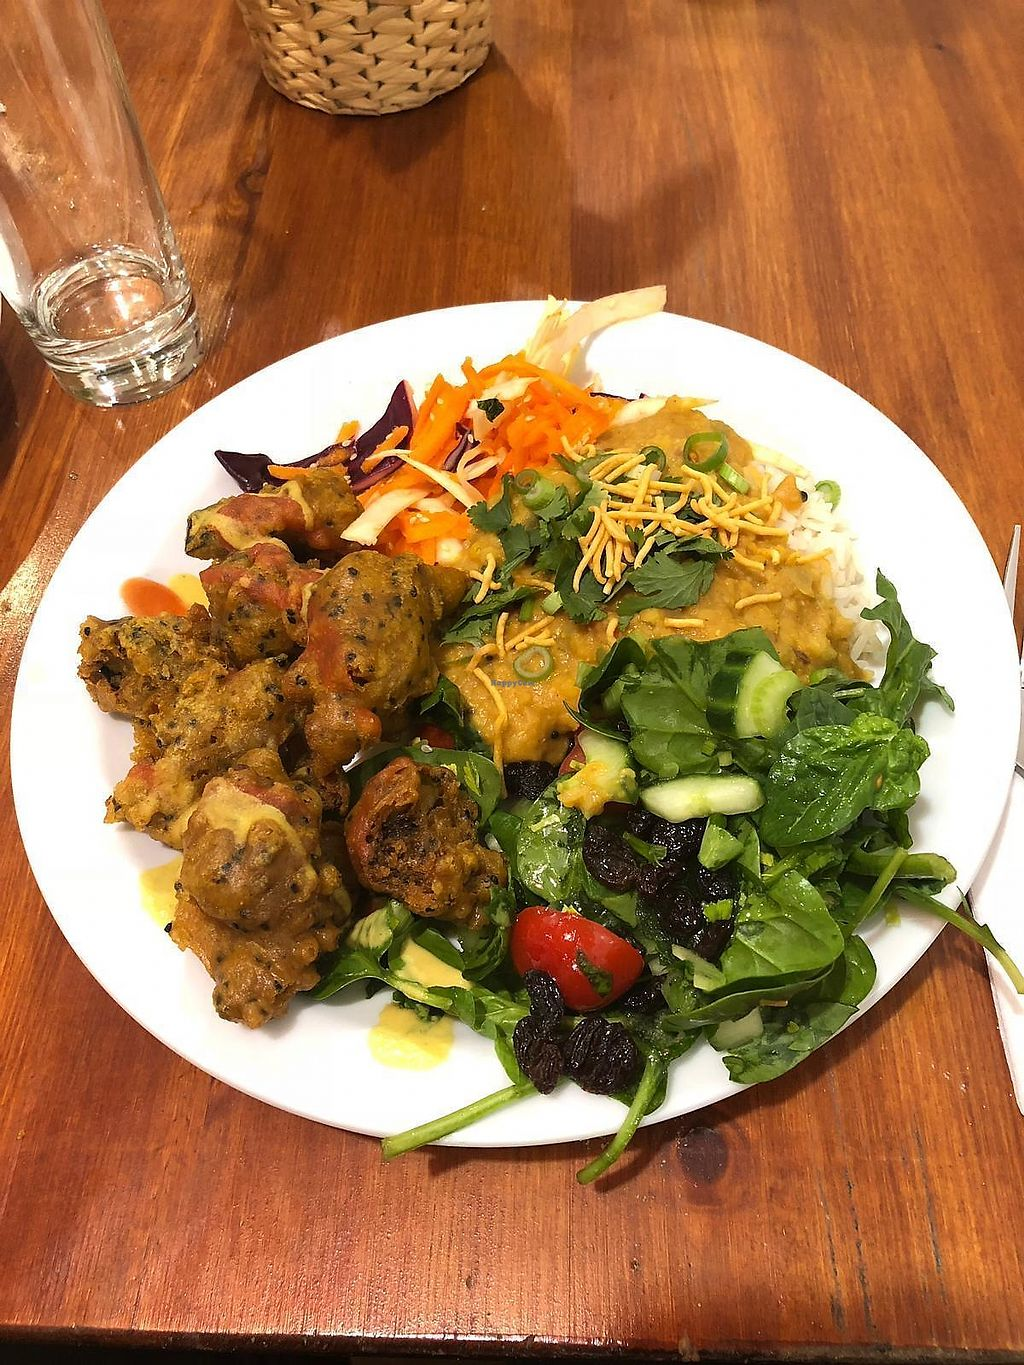 """Photo of Amrutha Lounge   by <a href=""""/members/profile/YouAreWhatYouEat"""">YouAreWhatYouEat</a> <br/>Vegan buffet... Curry, salad, pakoras, satay sauce  <br/> February 20, 2018  - <a href='/contact/abuse/image/112580/361520'>Report</a>"""